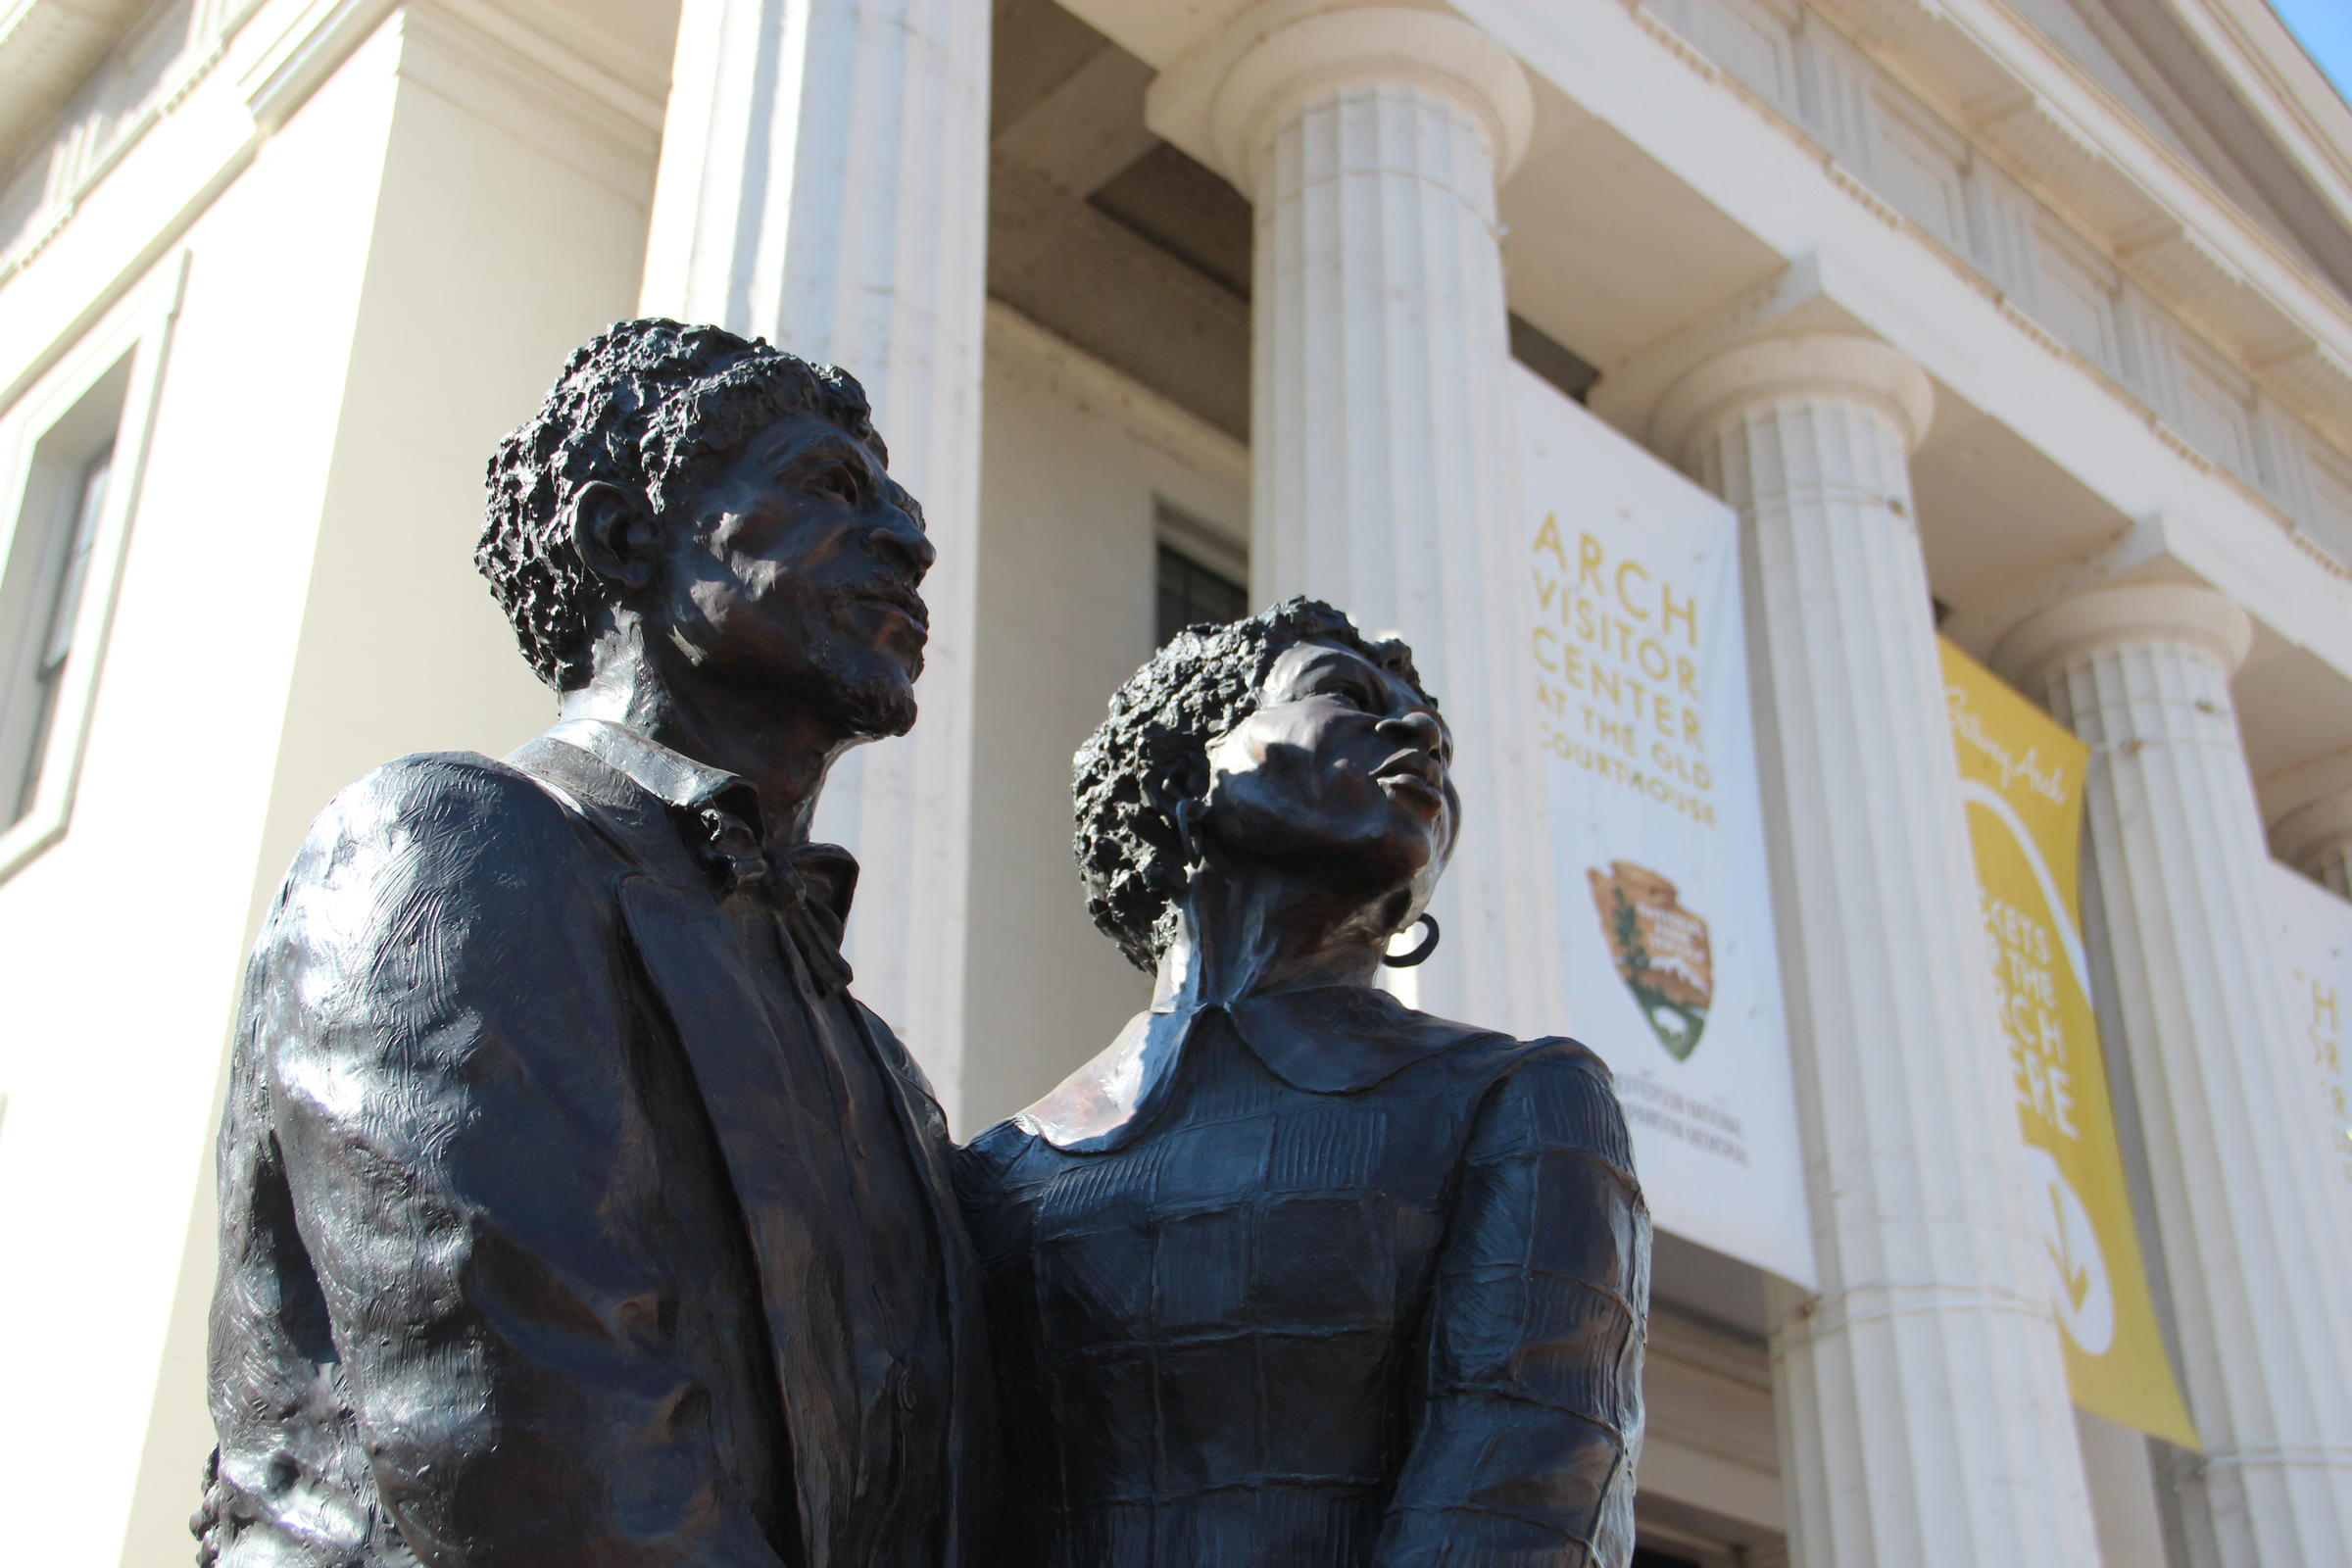 The Dred Scott memorial was one of the first places our new We Live Here co-host, Kameel Stanley, went when she first got into town. TIM LLOYD   ST. LOUIS PUBLIC RADIO